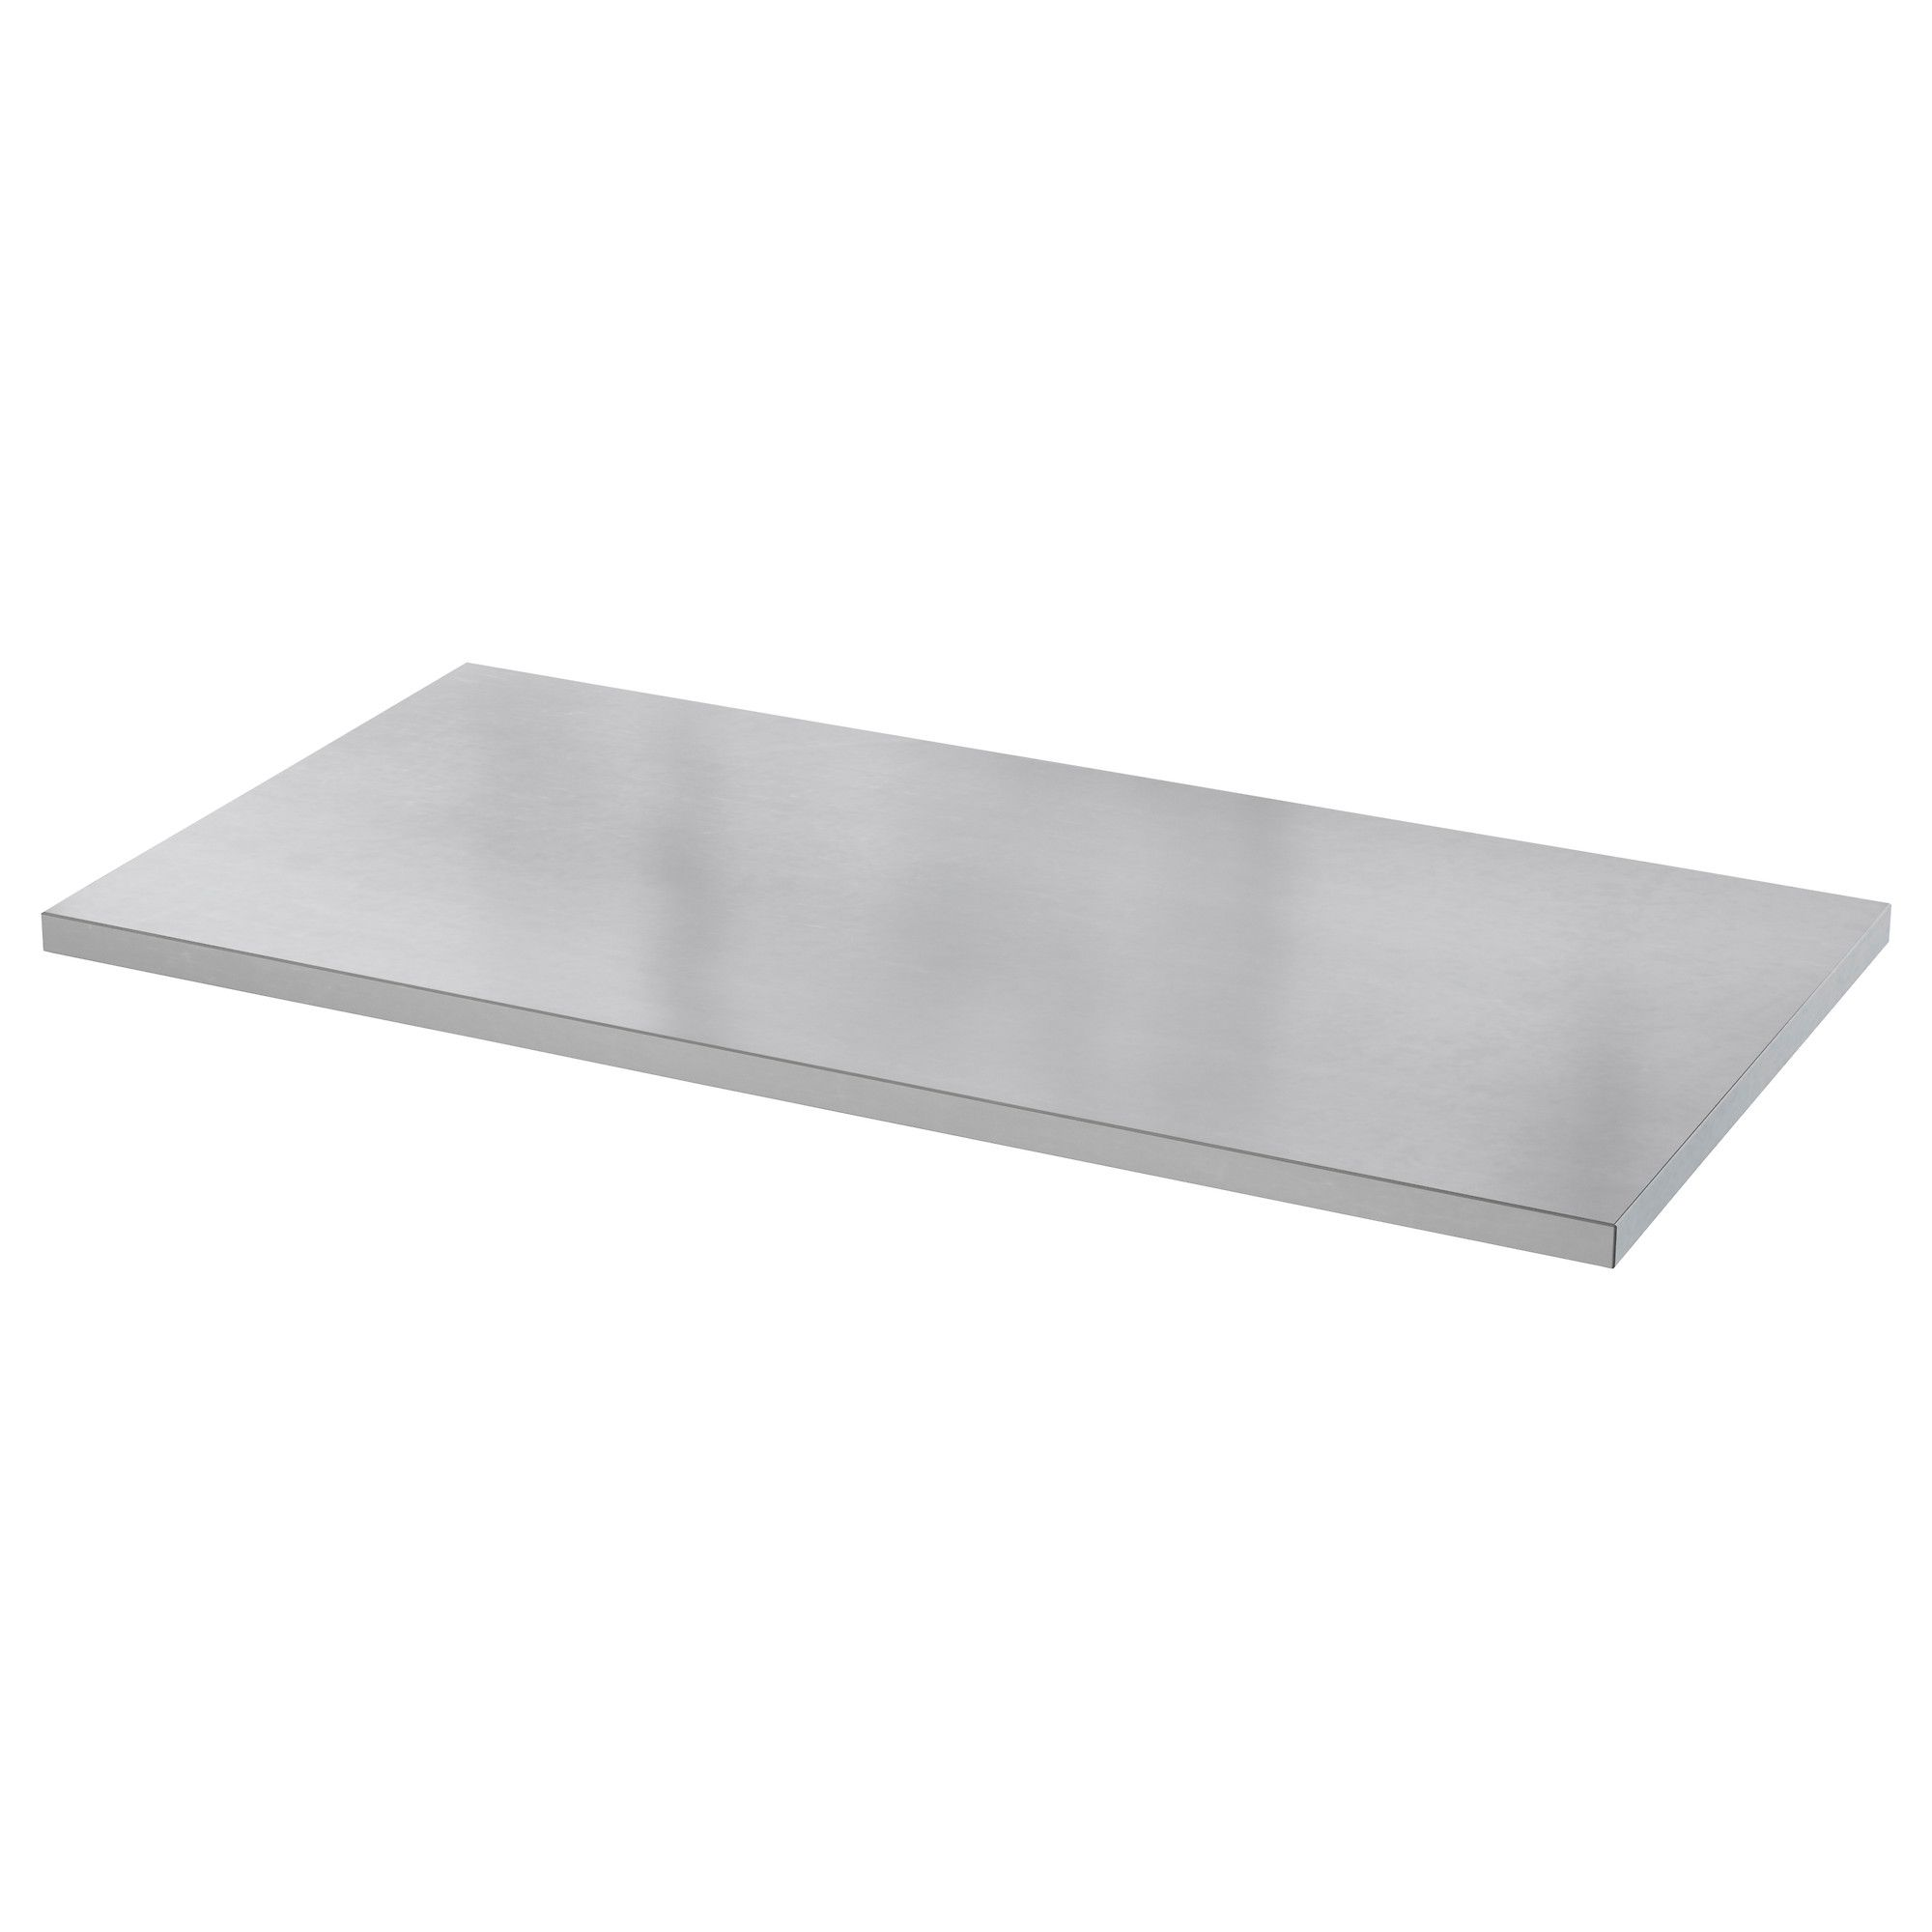 Sanfrid Table Top Ikea Ideal To Be A Wall Feature And A